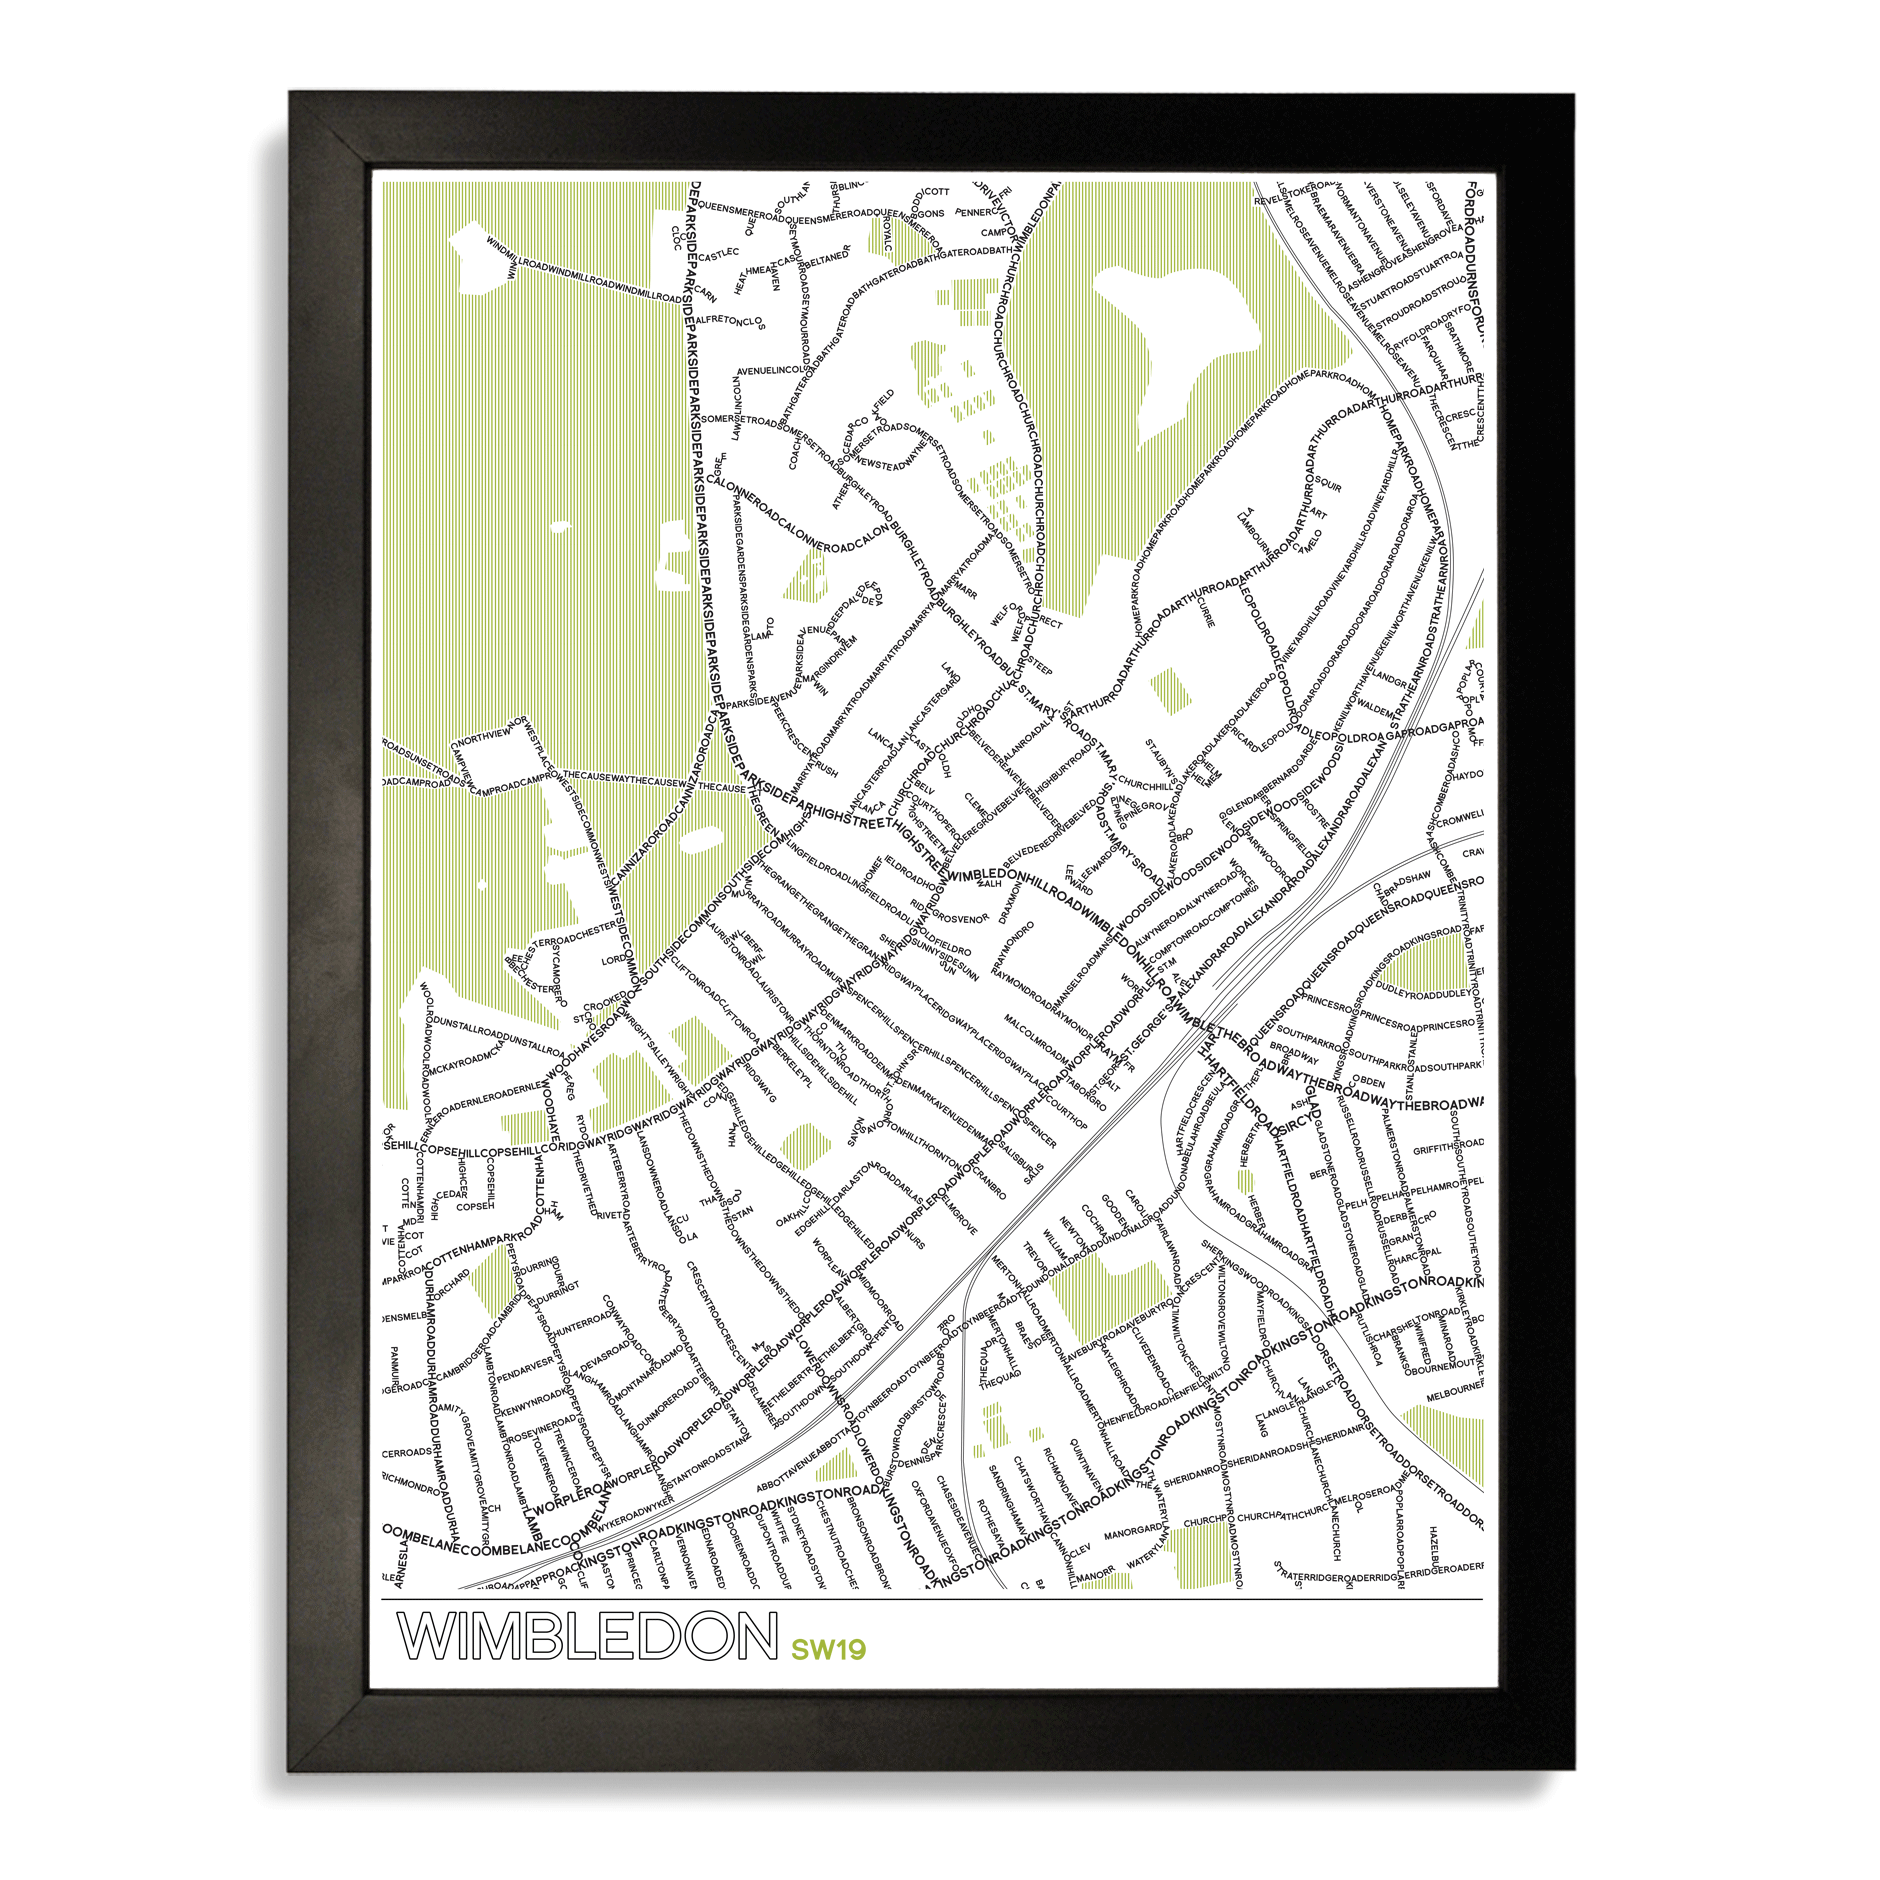 Place in Print Wimbledon SW19 Typographic Map Art Poster Print